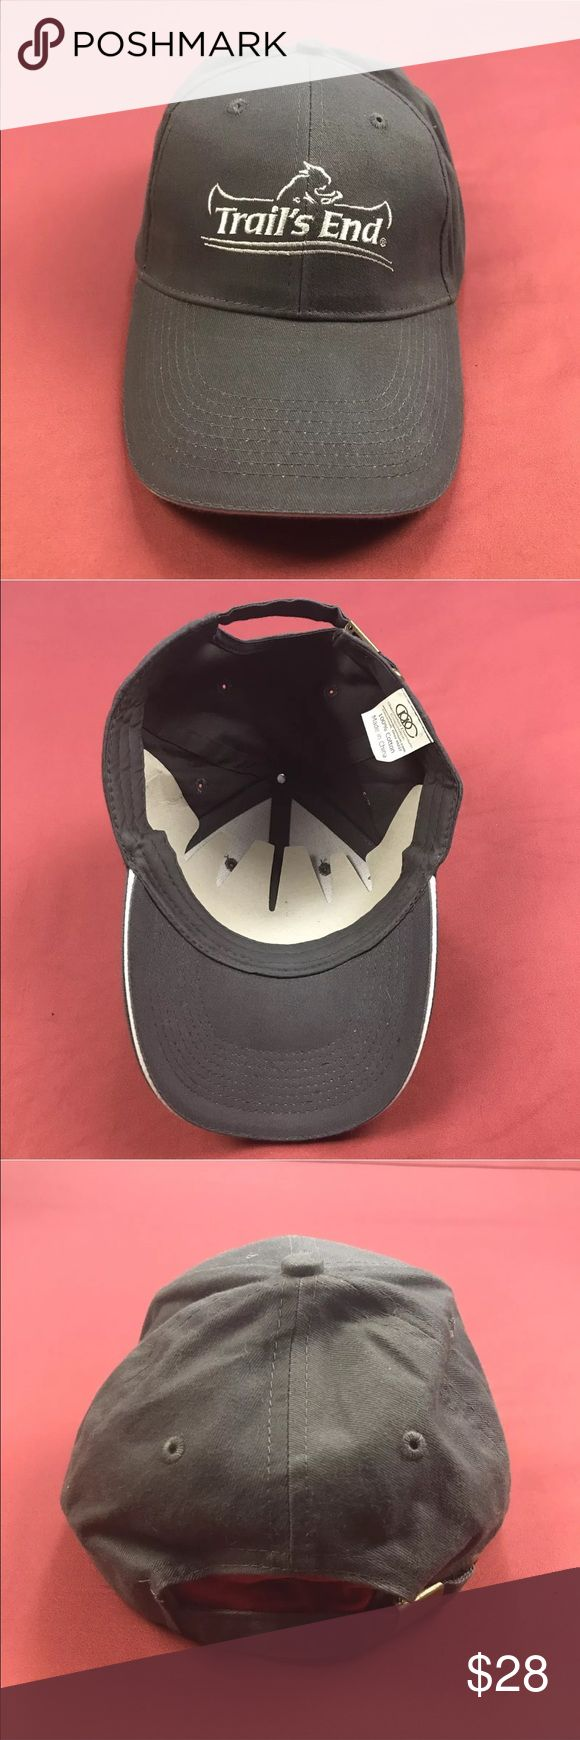 NWOT Trails End Popcorn Baseball Cap Very Good Condition! No Flaws.  One Size. Adjustable Strapback.  Please, review pics. Contact me if you have questions. Smoke/Pet free home.   💋❤️🌷Save, Save, Save! 💋❤️🌷  💵👍🏻💰❤️ 30% off 3+ Bundles ❤️💰👍🏻💵 APC Accessories Hats